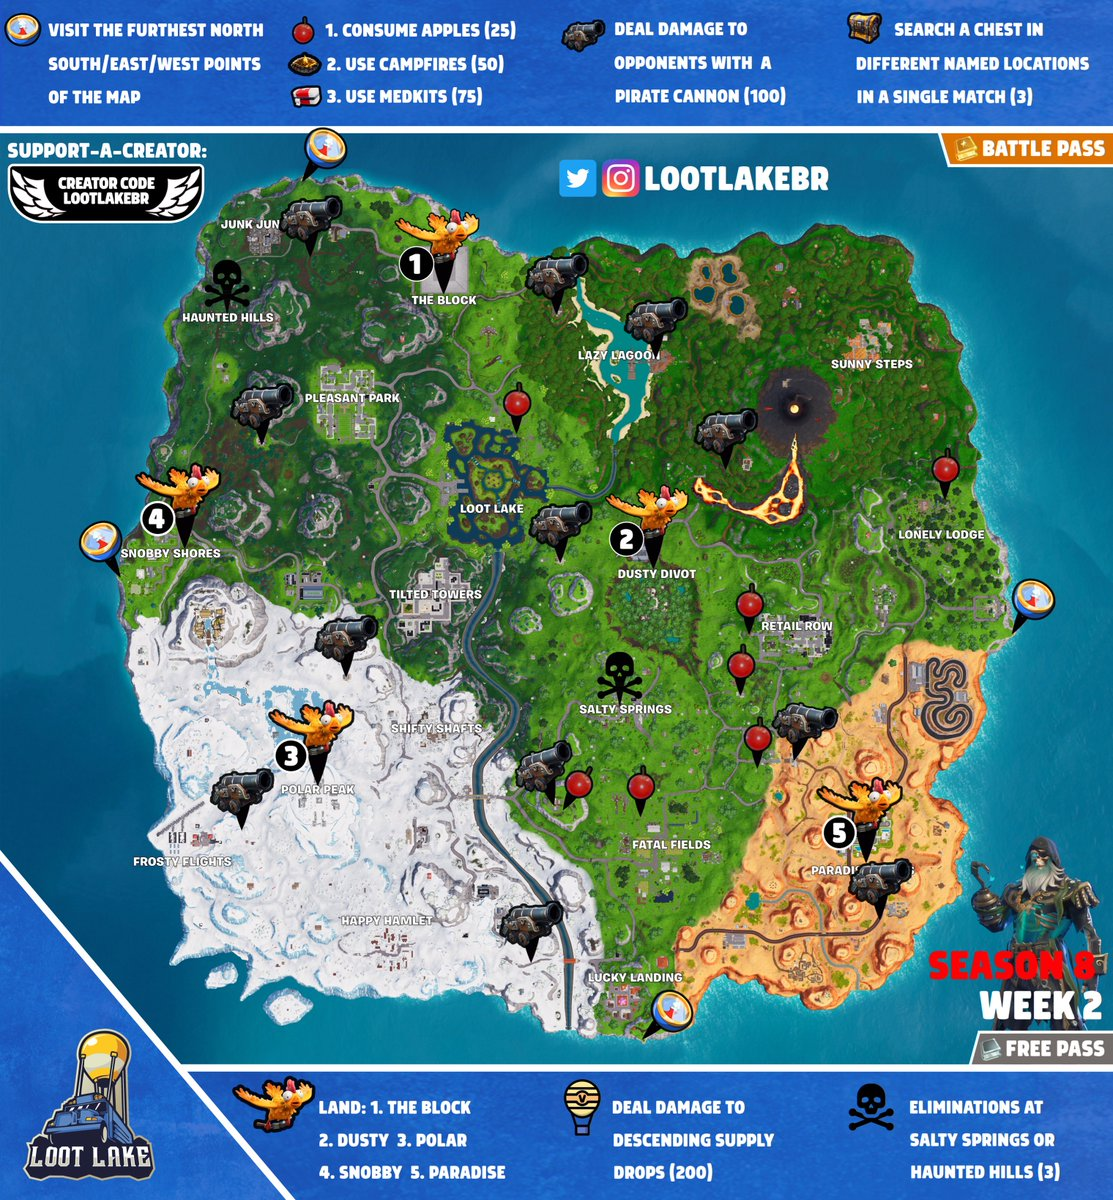 Fortnite eliminations at salty springs or haunted hills